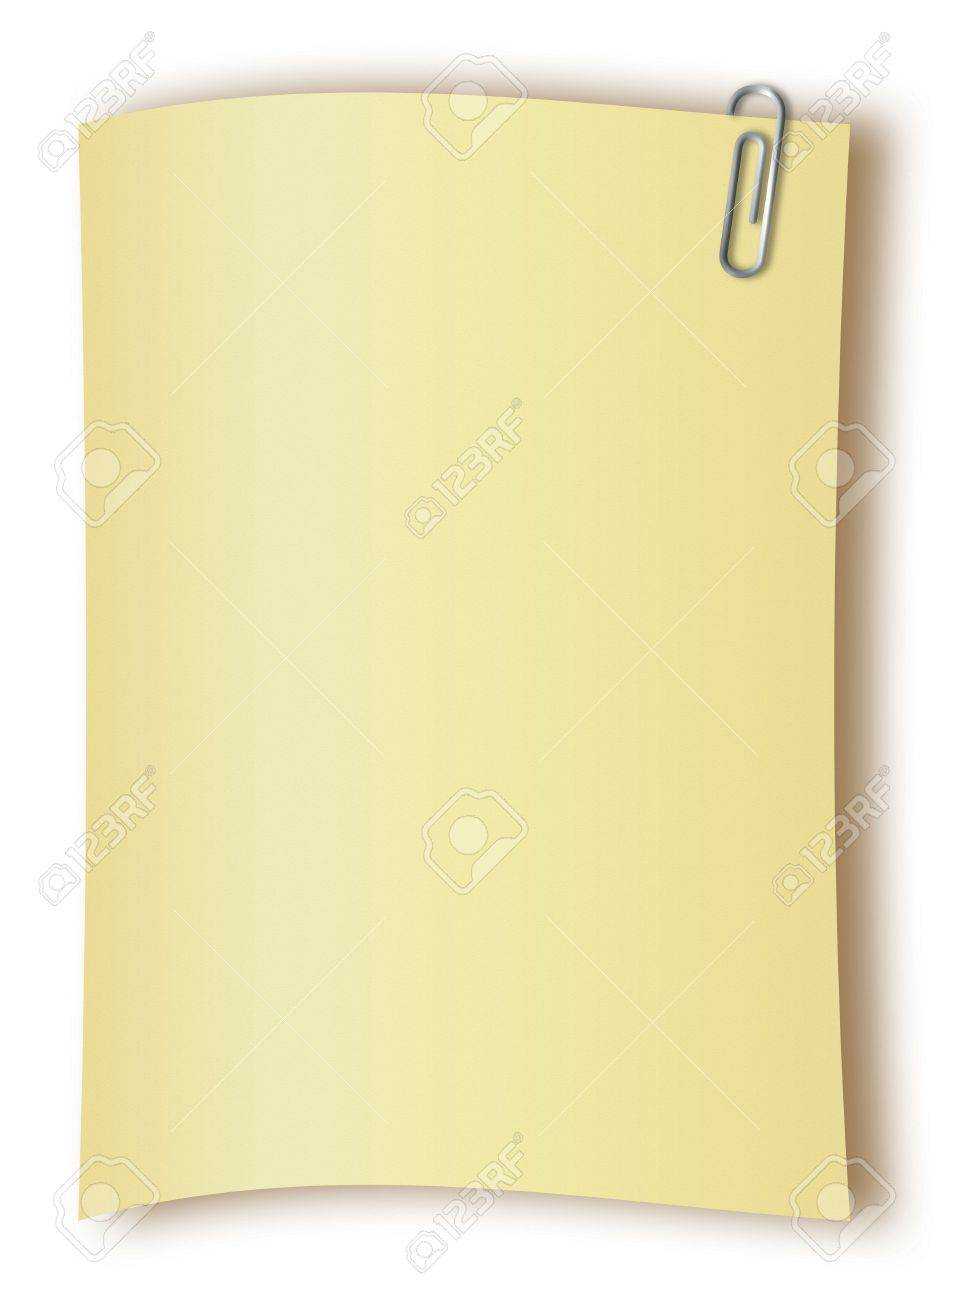 Blank page with a paper clip over white background Stock Photo - 2554571